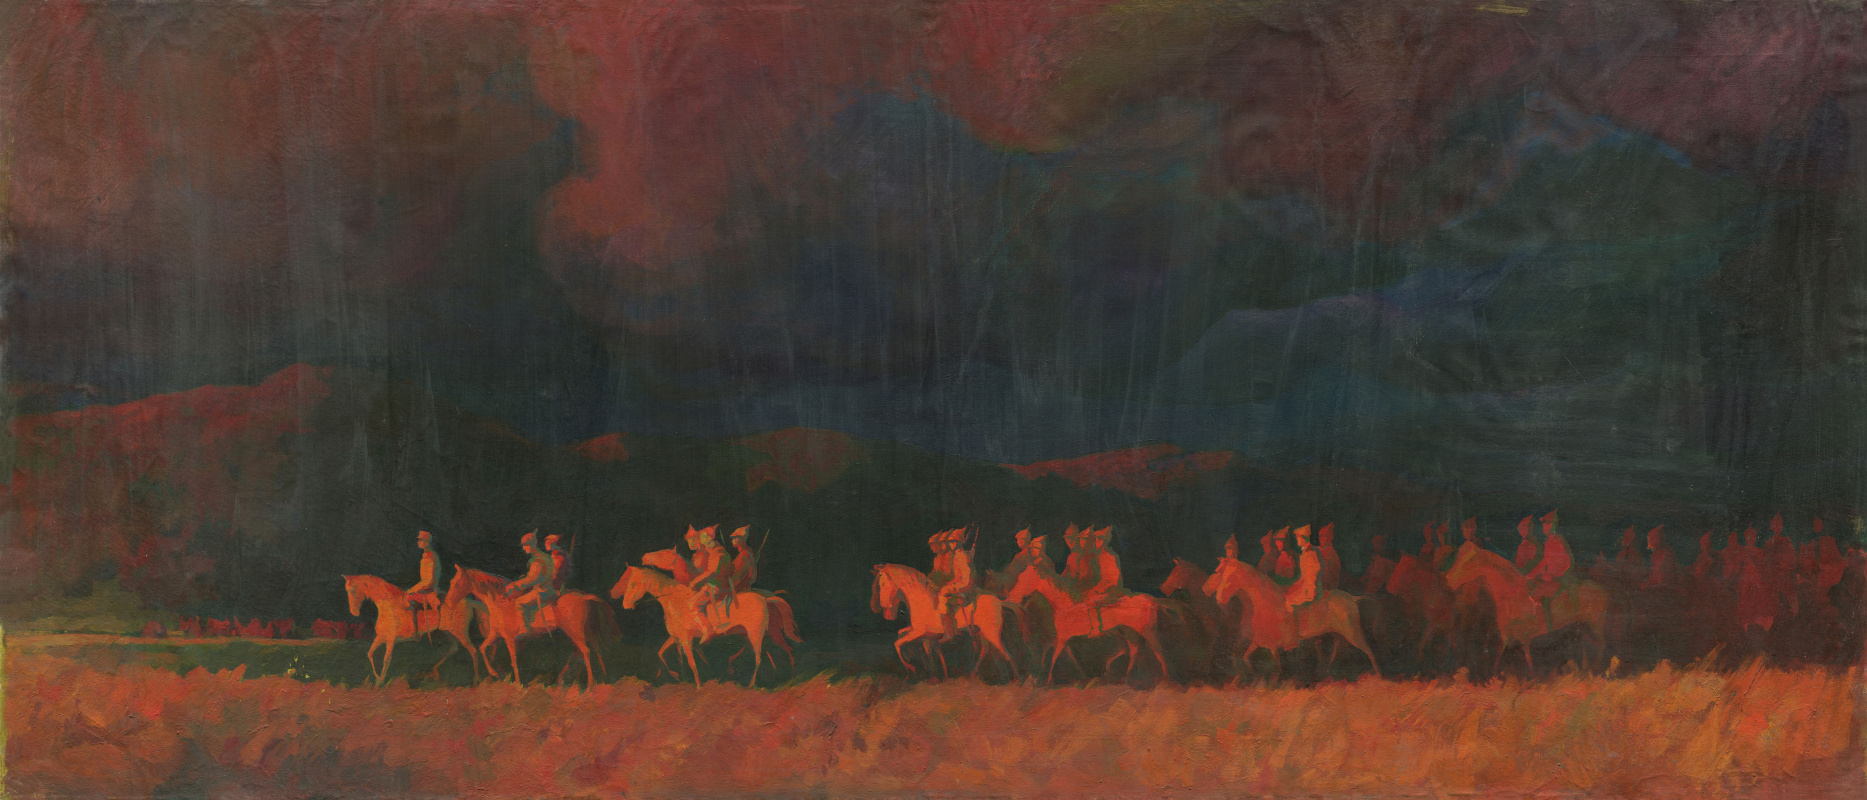 Alexandrovich Rudolf Pavlov. Riders. From a series of paintings about the history of Russia at the beginning of the 20th century.